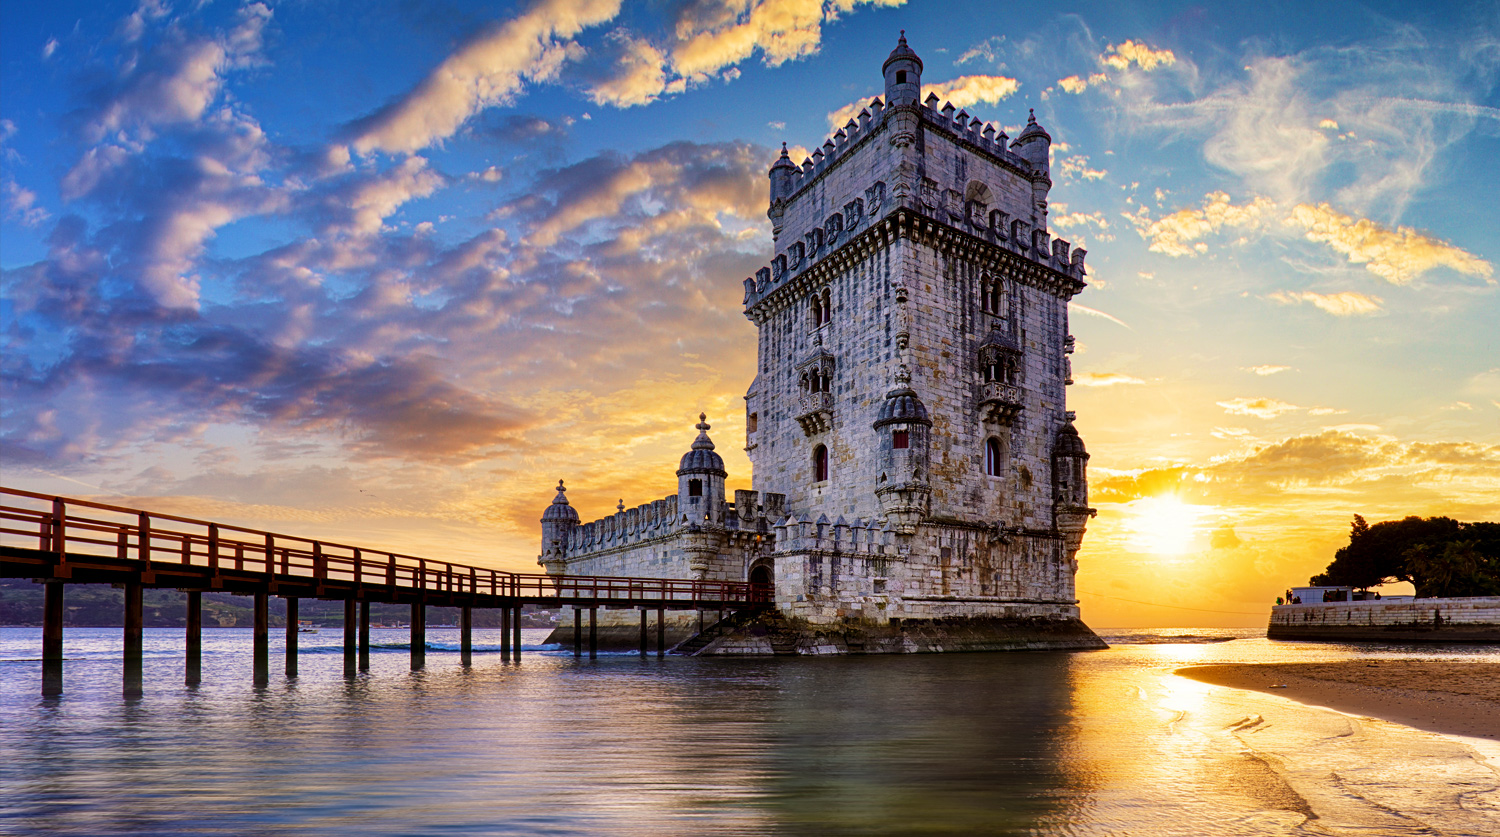 Old stone castle on water at sunset